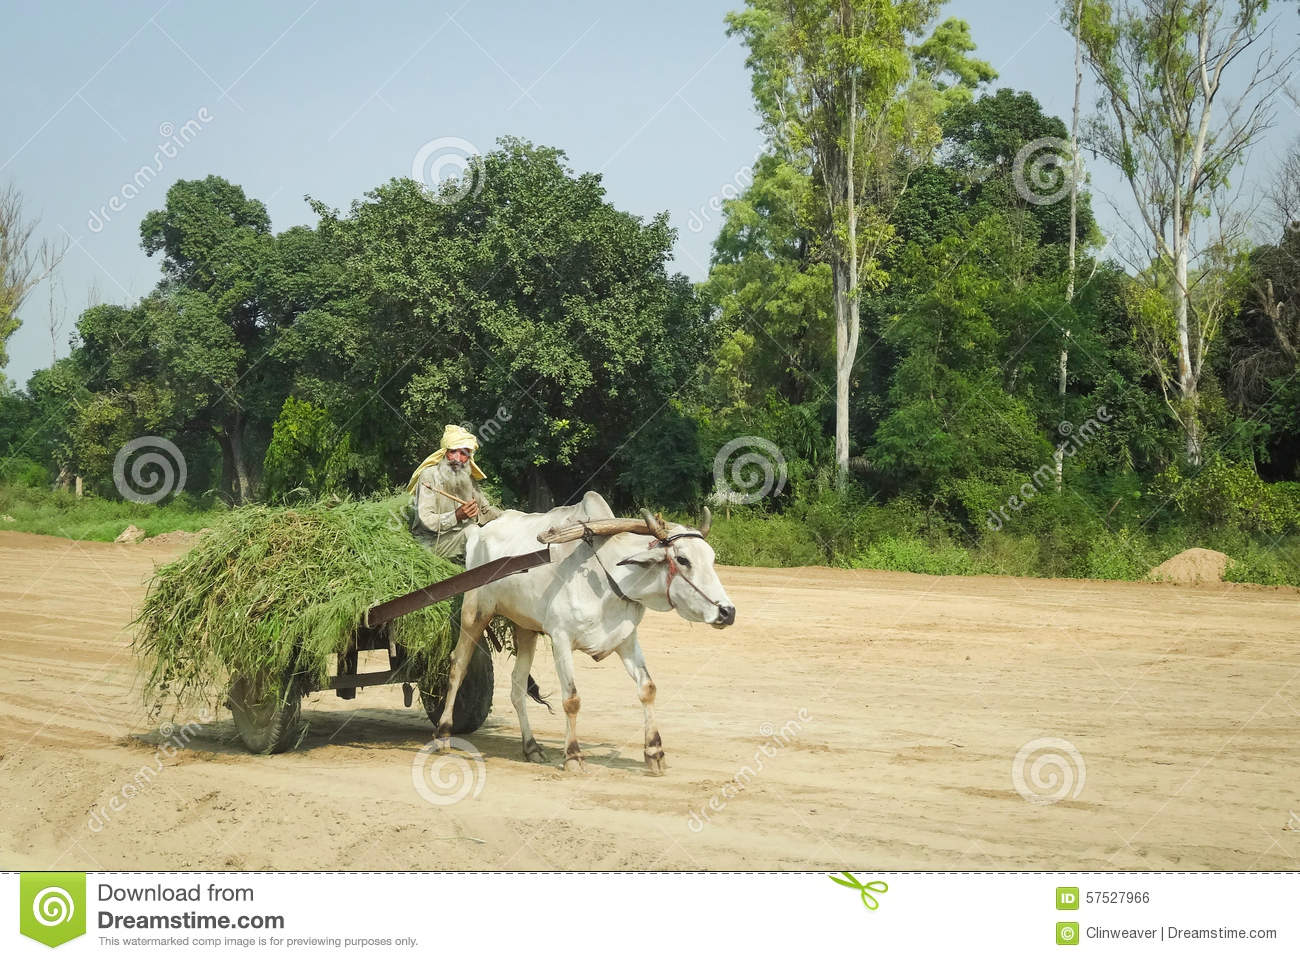 Oxcart in India